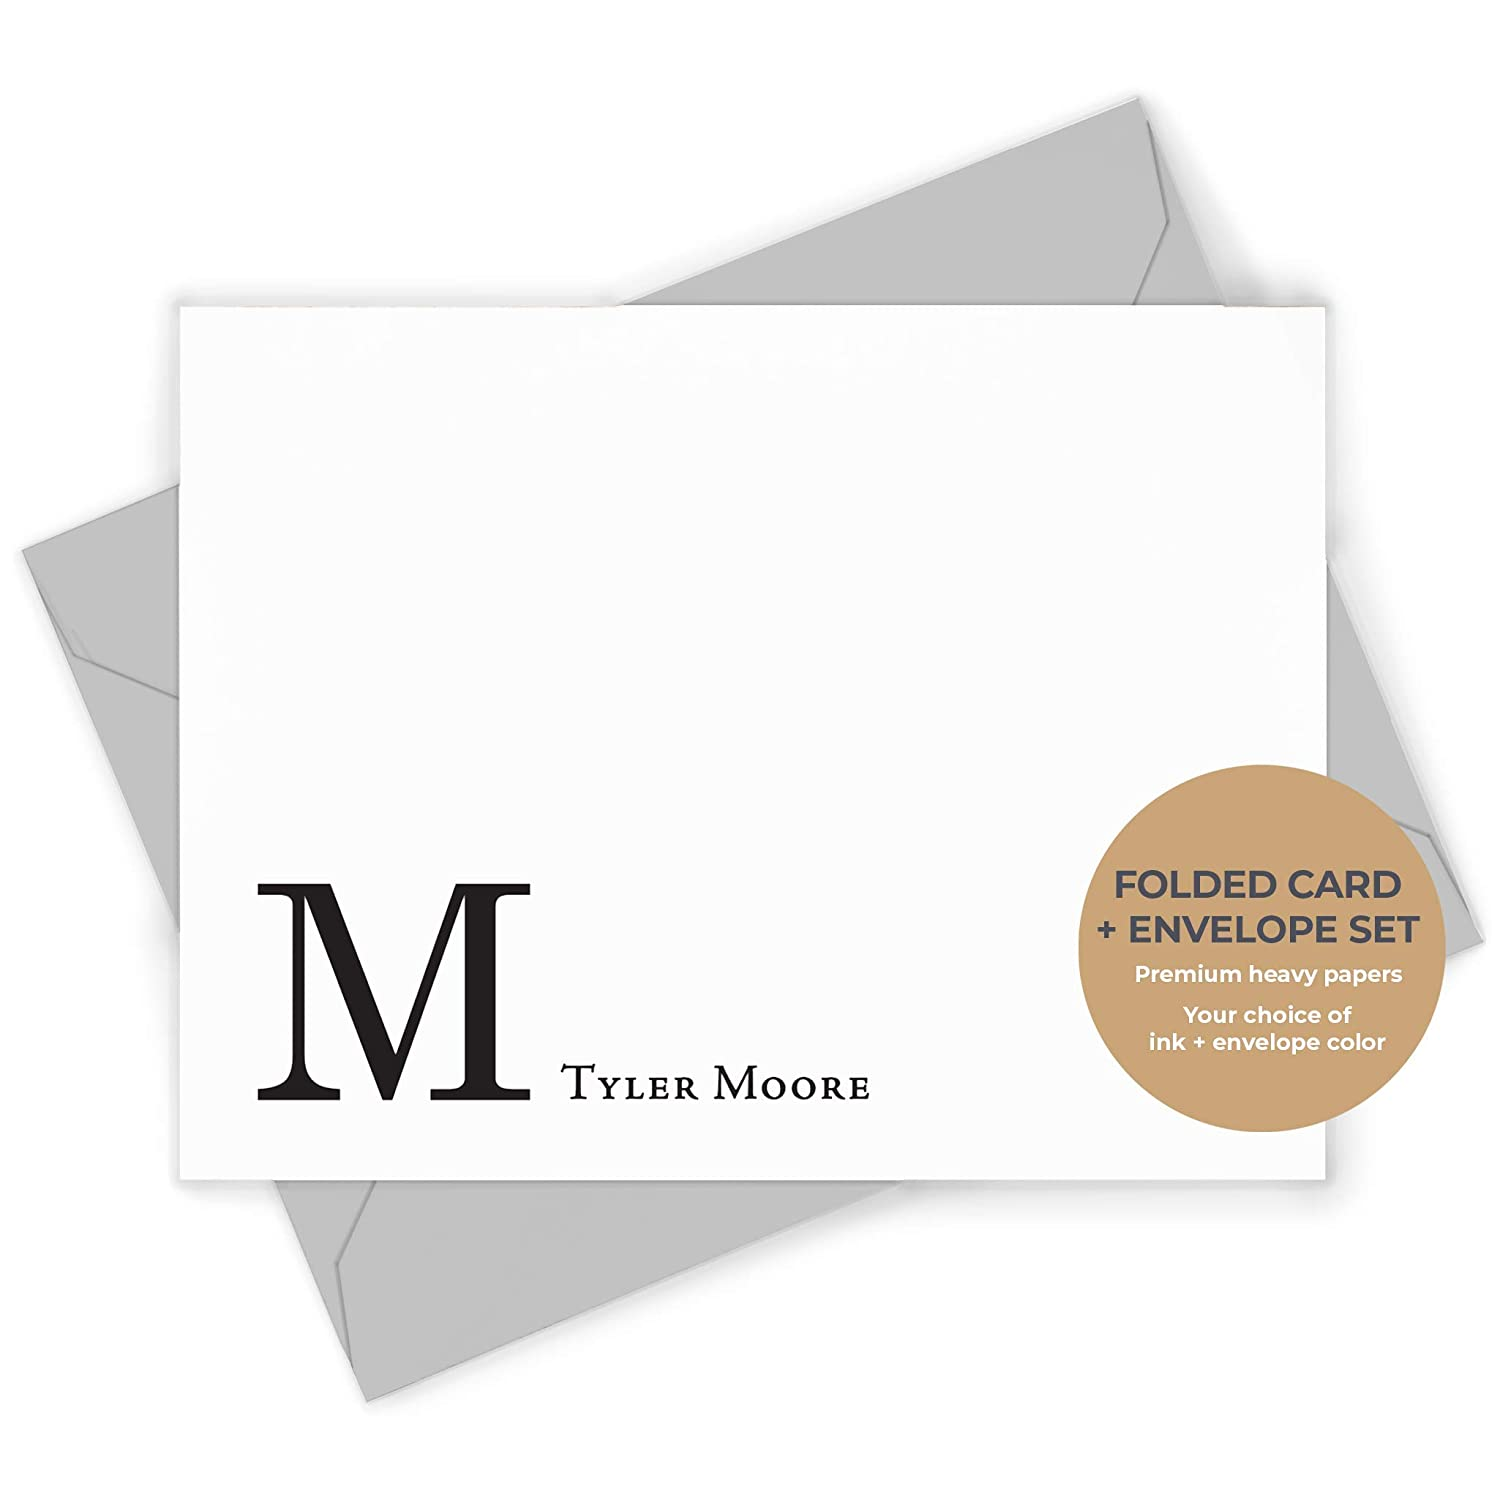 5 Masculine Note Cards Folded Note Cards Note Card Set Note Cards With Envelopes